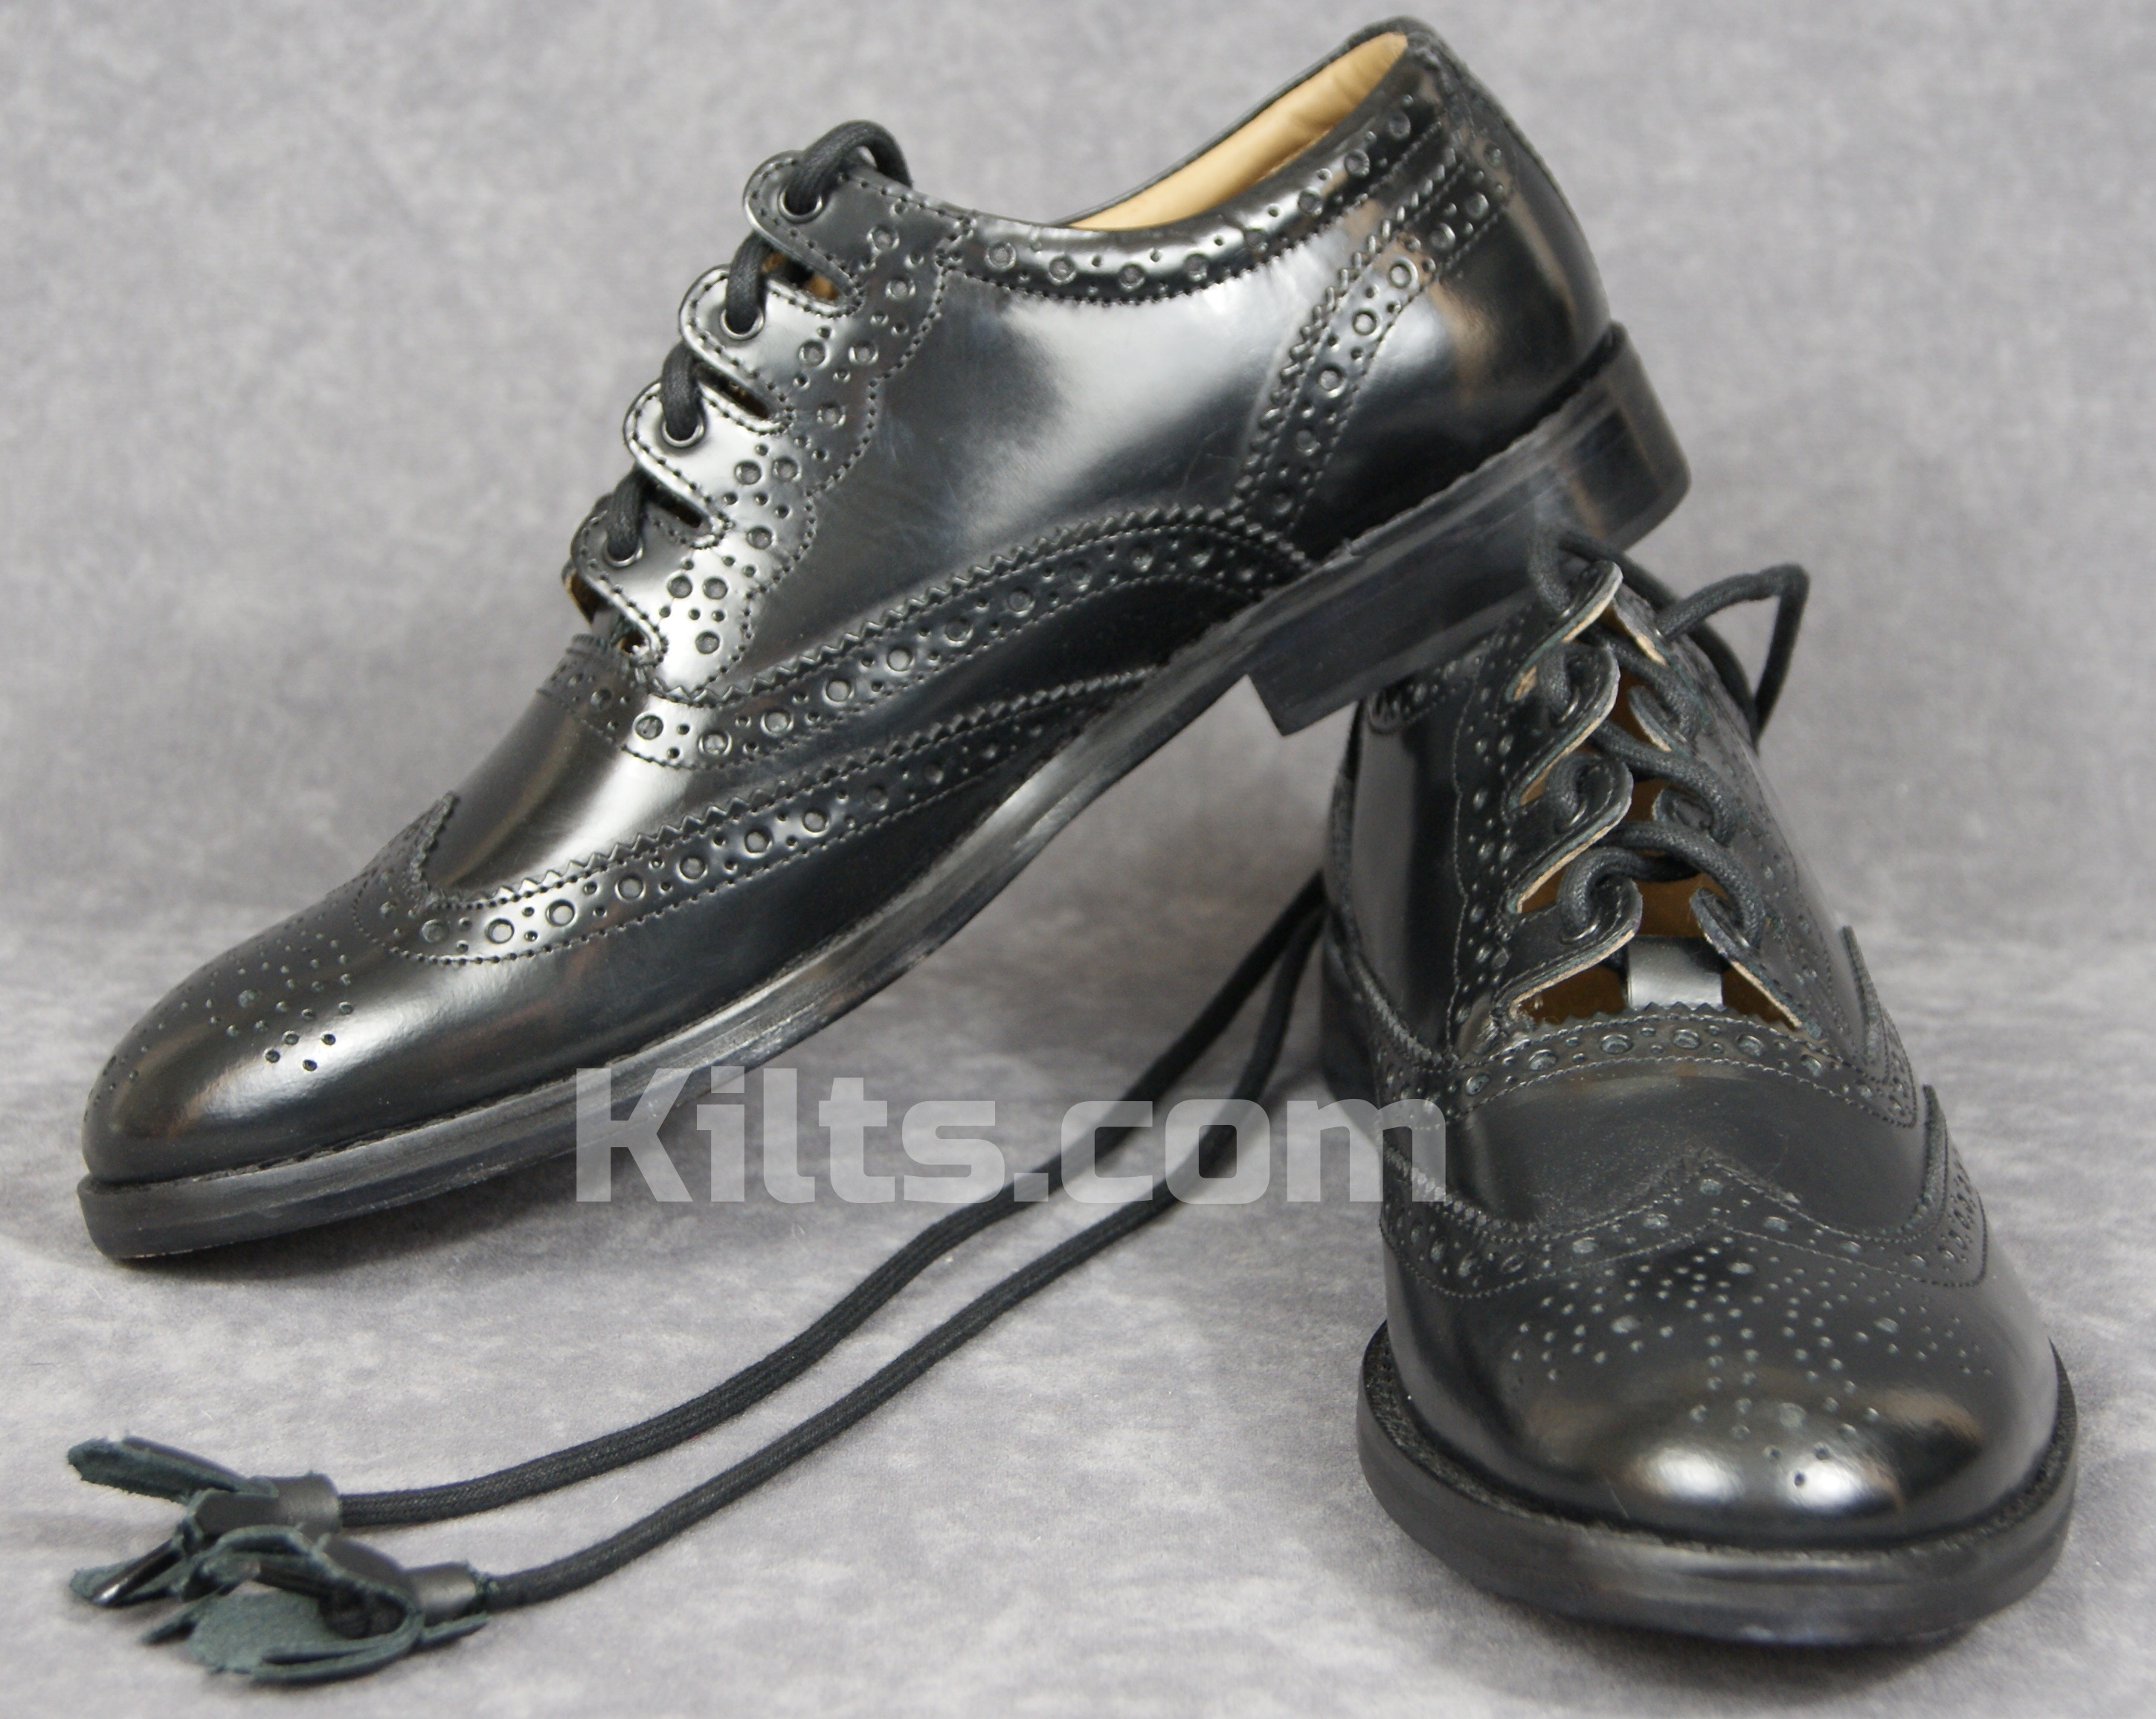 Check out our Glenfinnan Ghillie Brogues. They are the perfect kilt shoes.